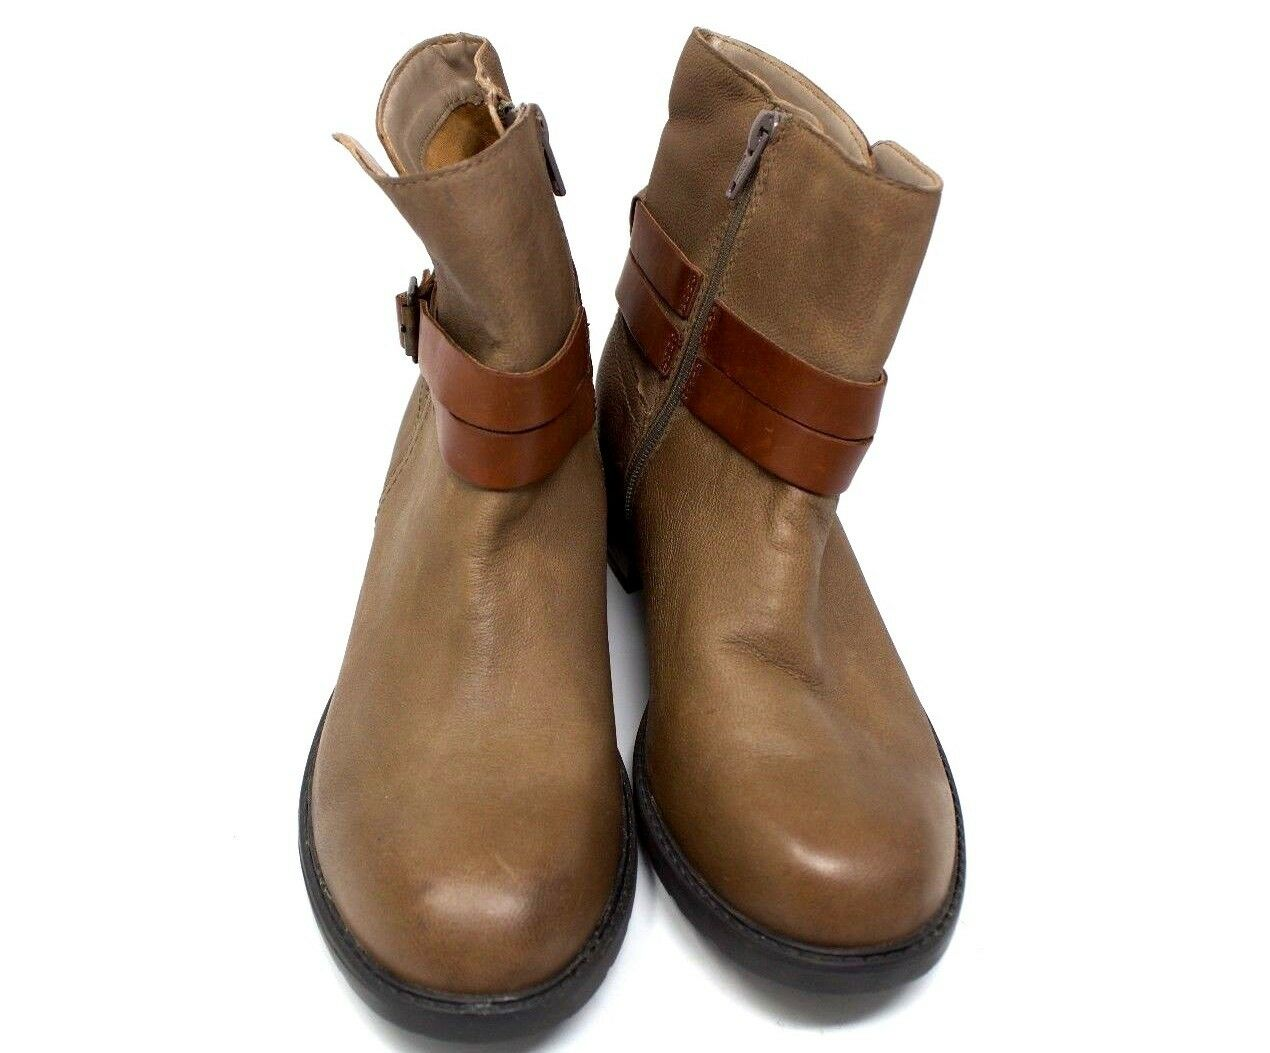 Clarks Brown Brown Brown color Wrap Ankle Boot Women shoes Size 6 20ec4c